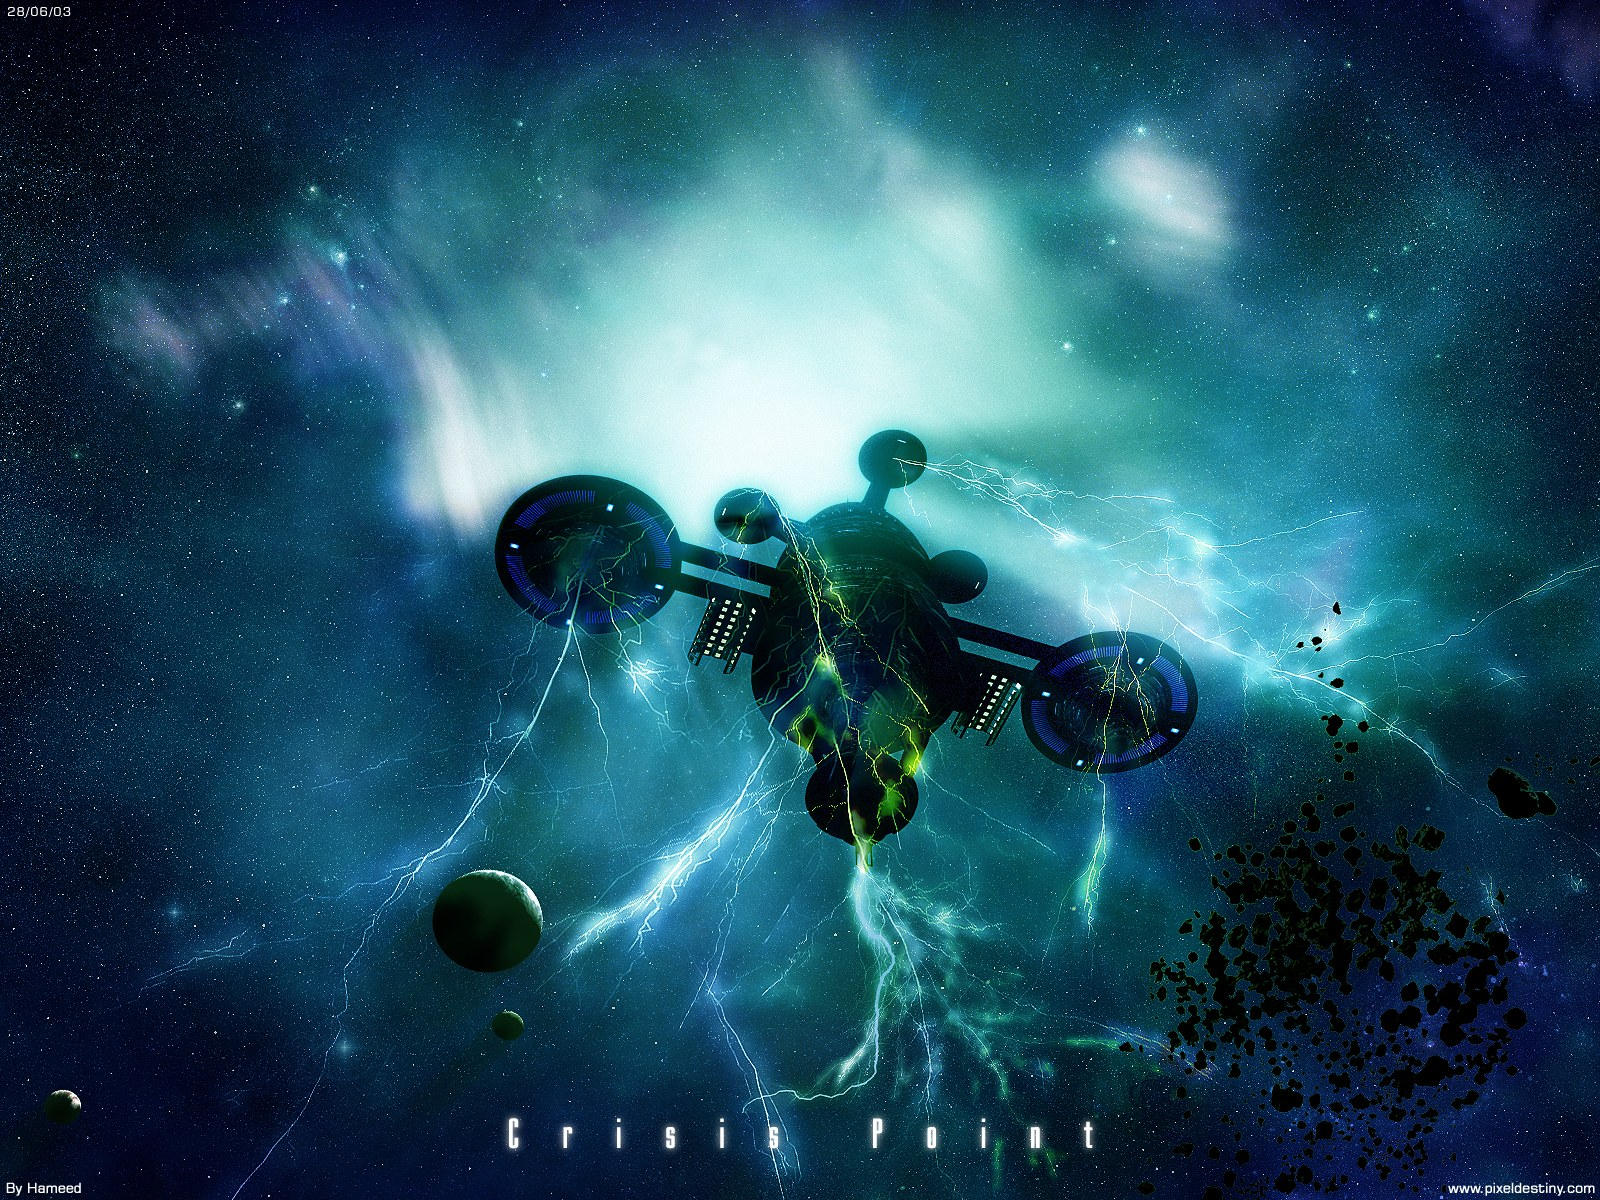 Crisis Point by Hameed